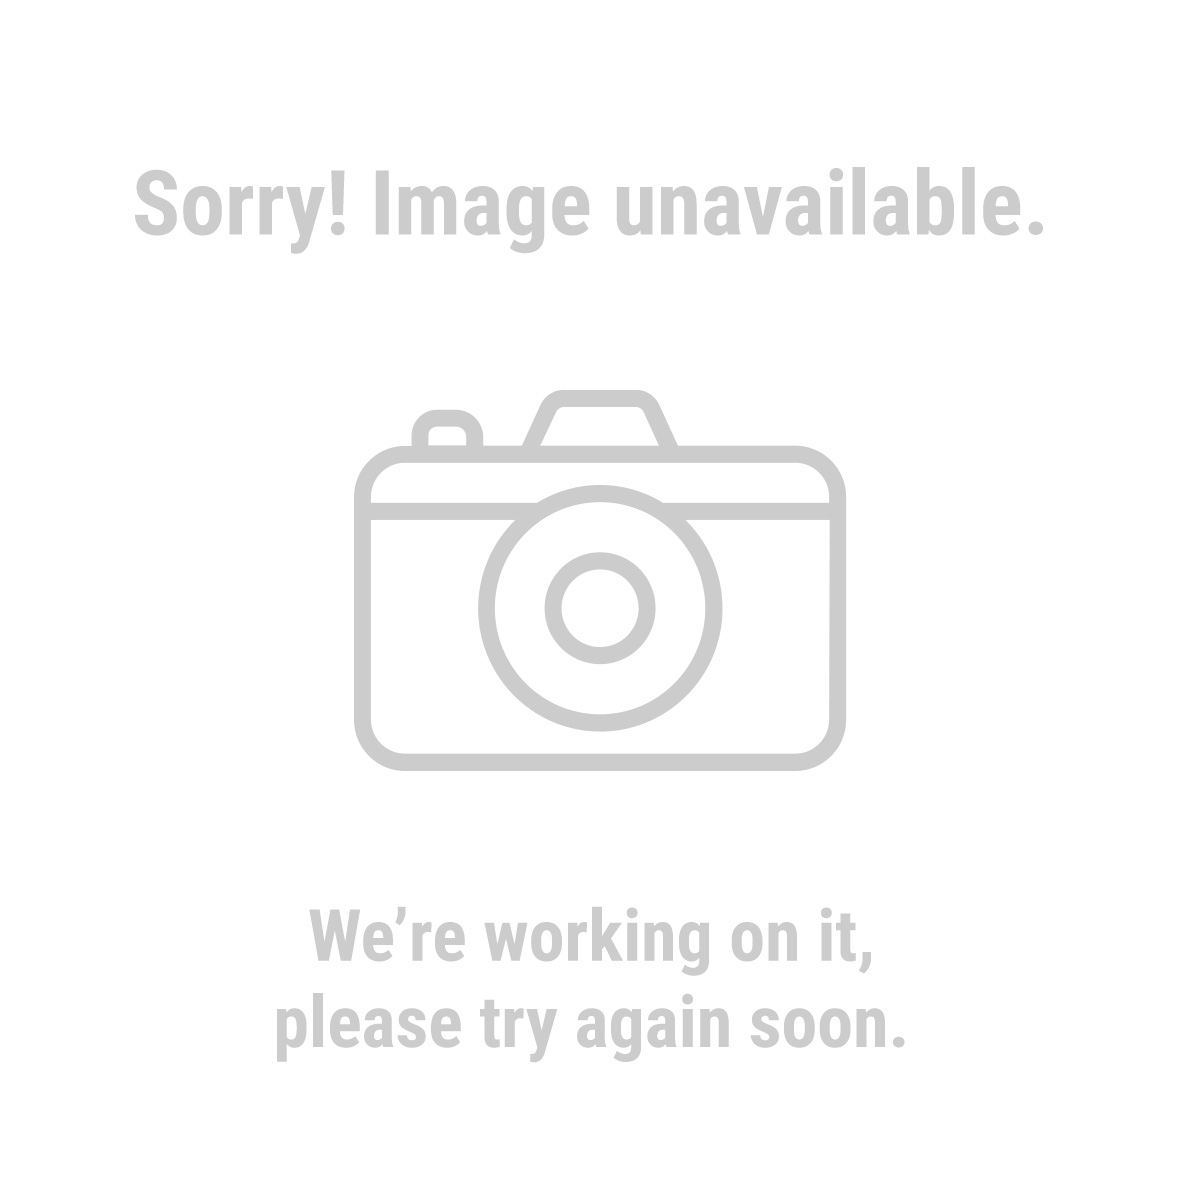 Central-Machinery 62335 36 in. Metal Brake with Stand